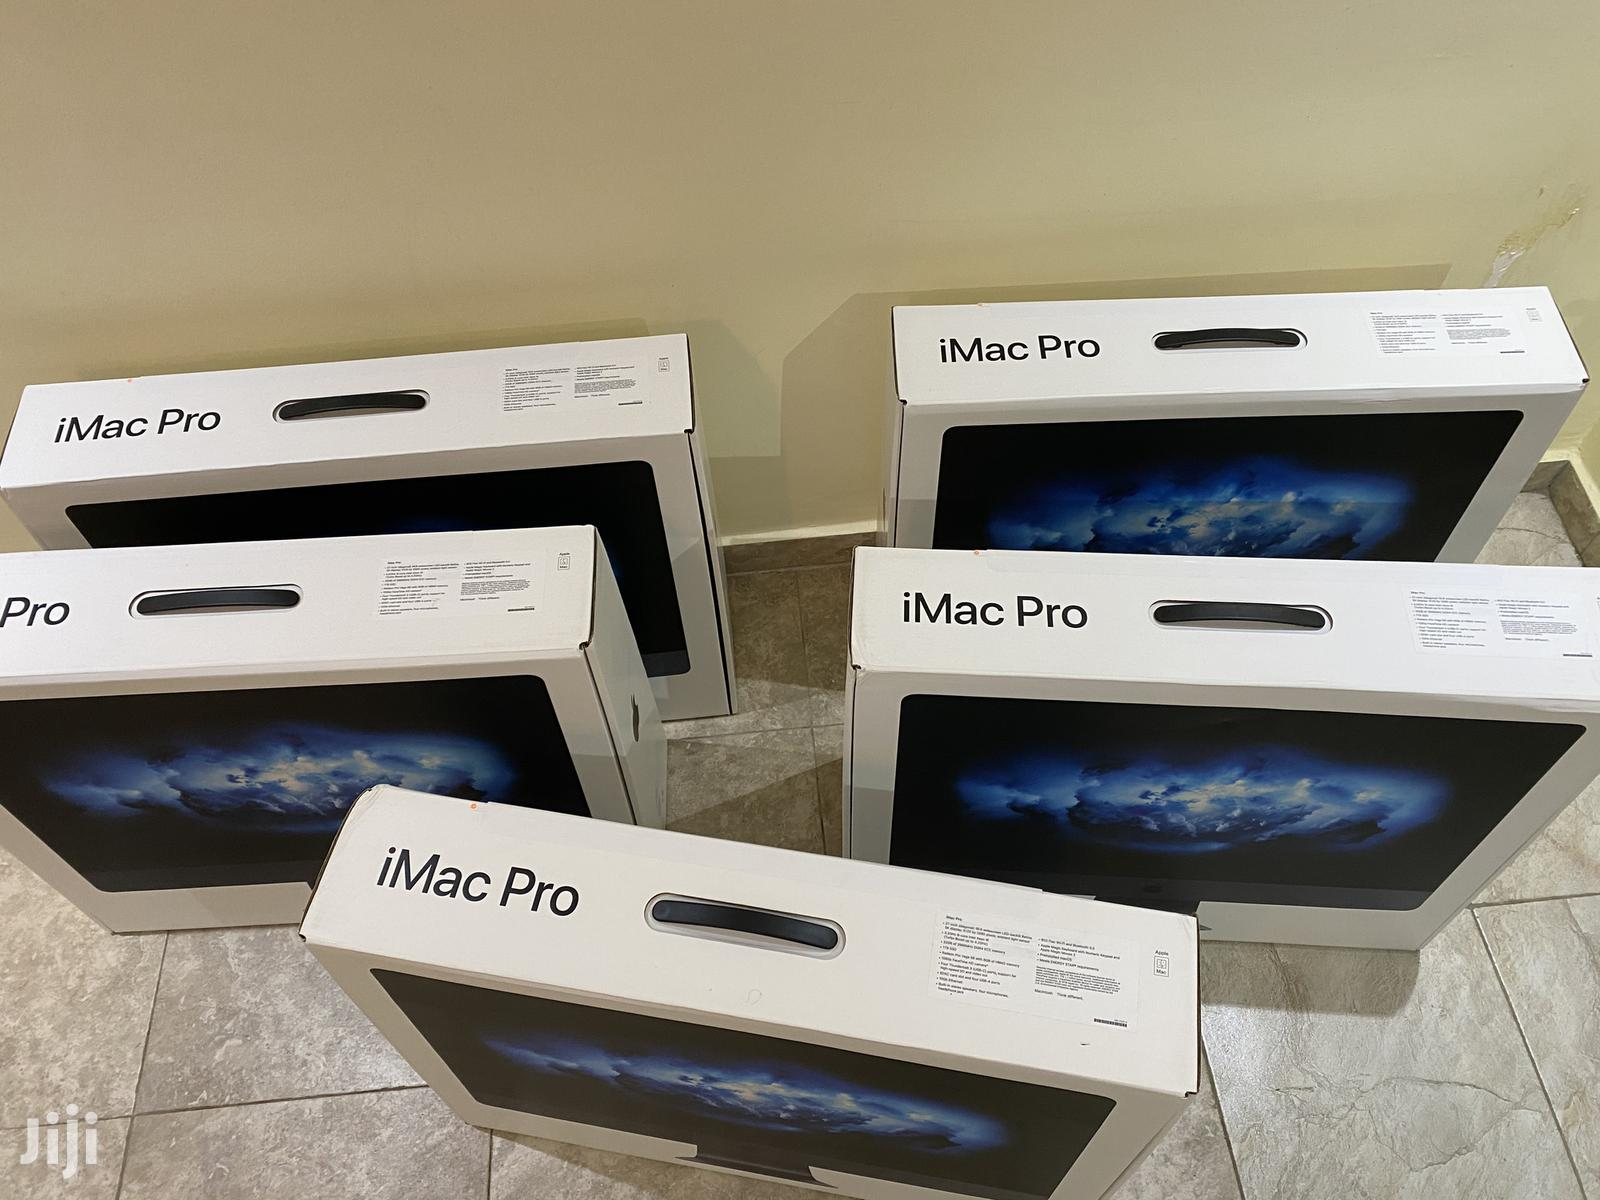 New Desktop Computer Apple iMac Pro 32GB Intel Xeon SSD 1T | Laptops & Computers for sale in Dansoman, Greater Accra, Ghana